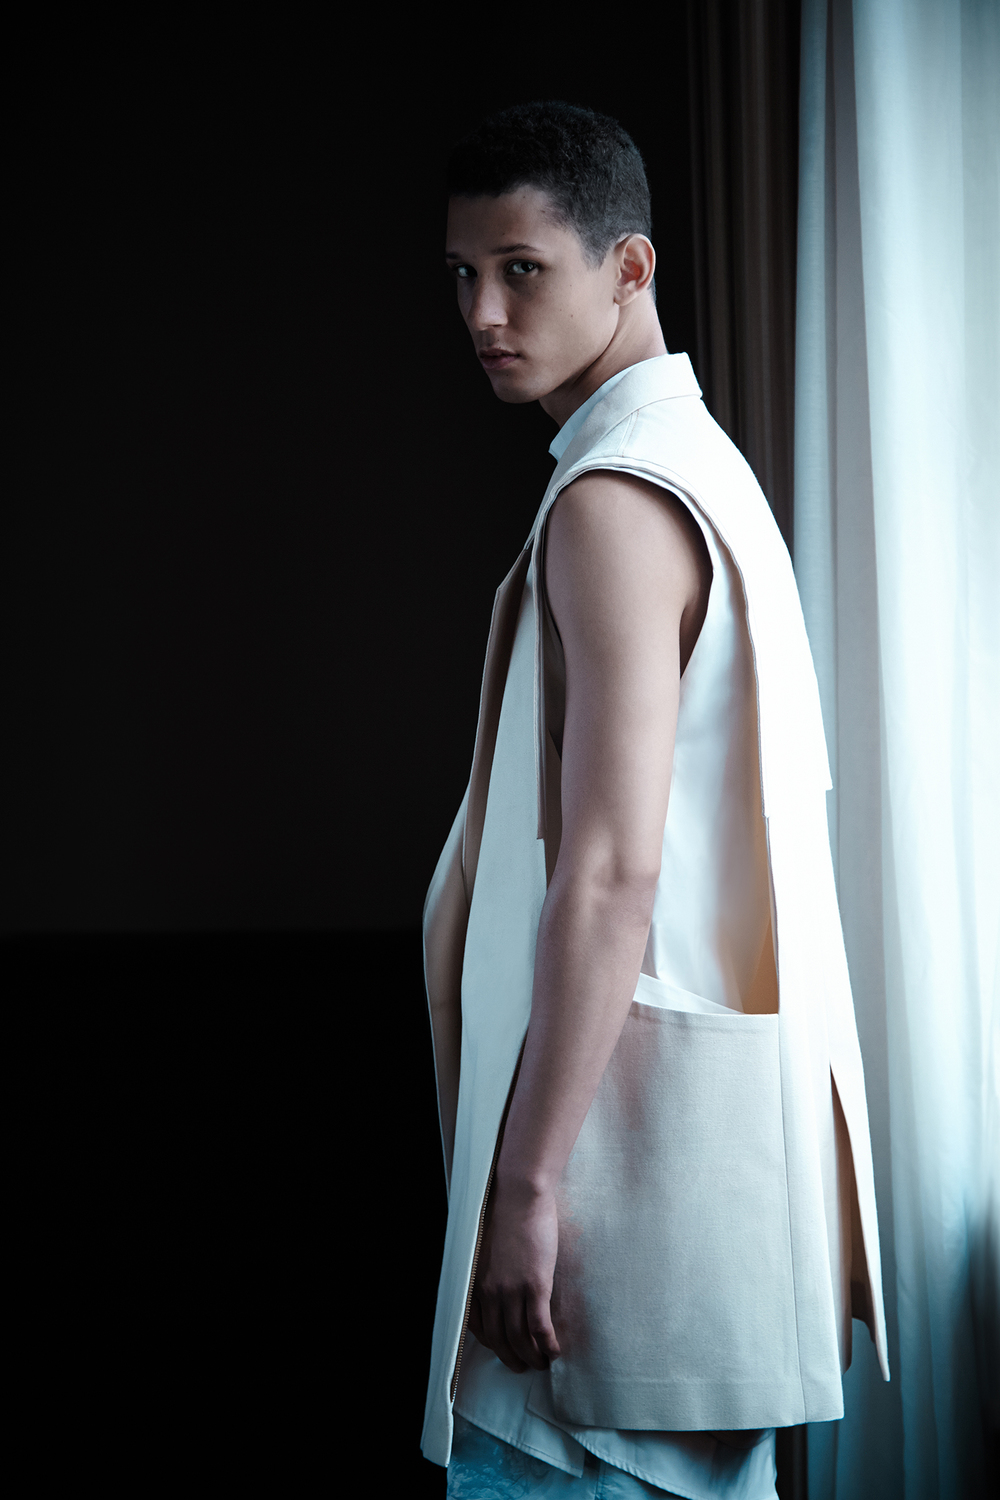 Sleeveless Jacket by Ruone Yan, BFA Menswear Design. Shirt by Dominic Tan, BFA Menswear Design. Shorts by Kevin C. Smith, MFA Menswear Design, and Andrea Nyberg, MFA Textile Design.